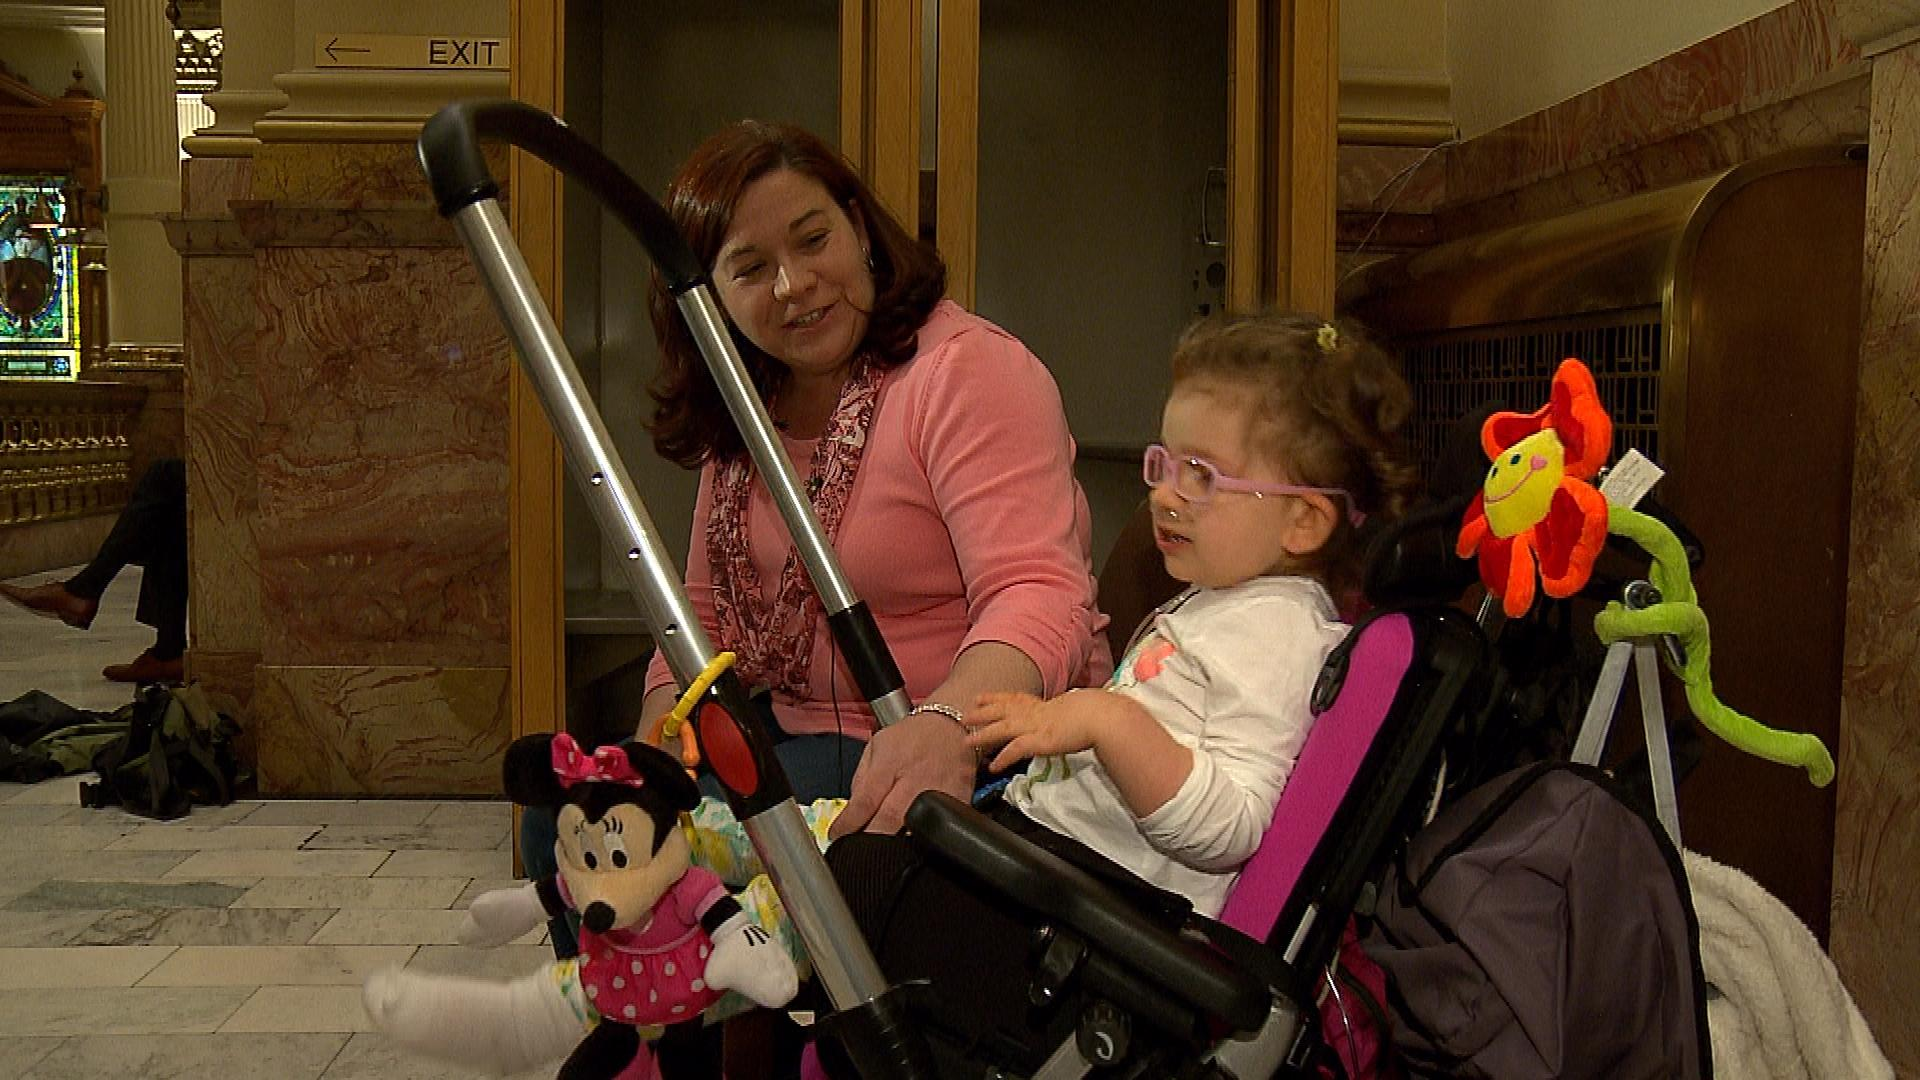 Meagan Patrick with 3-year-old Addelyn (credit: CBS)